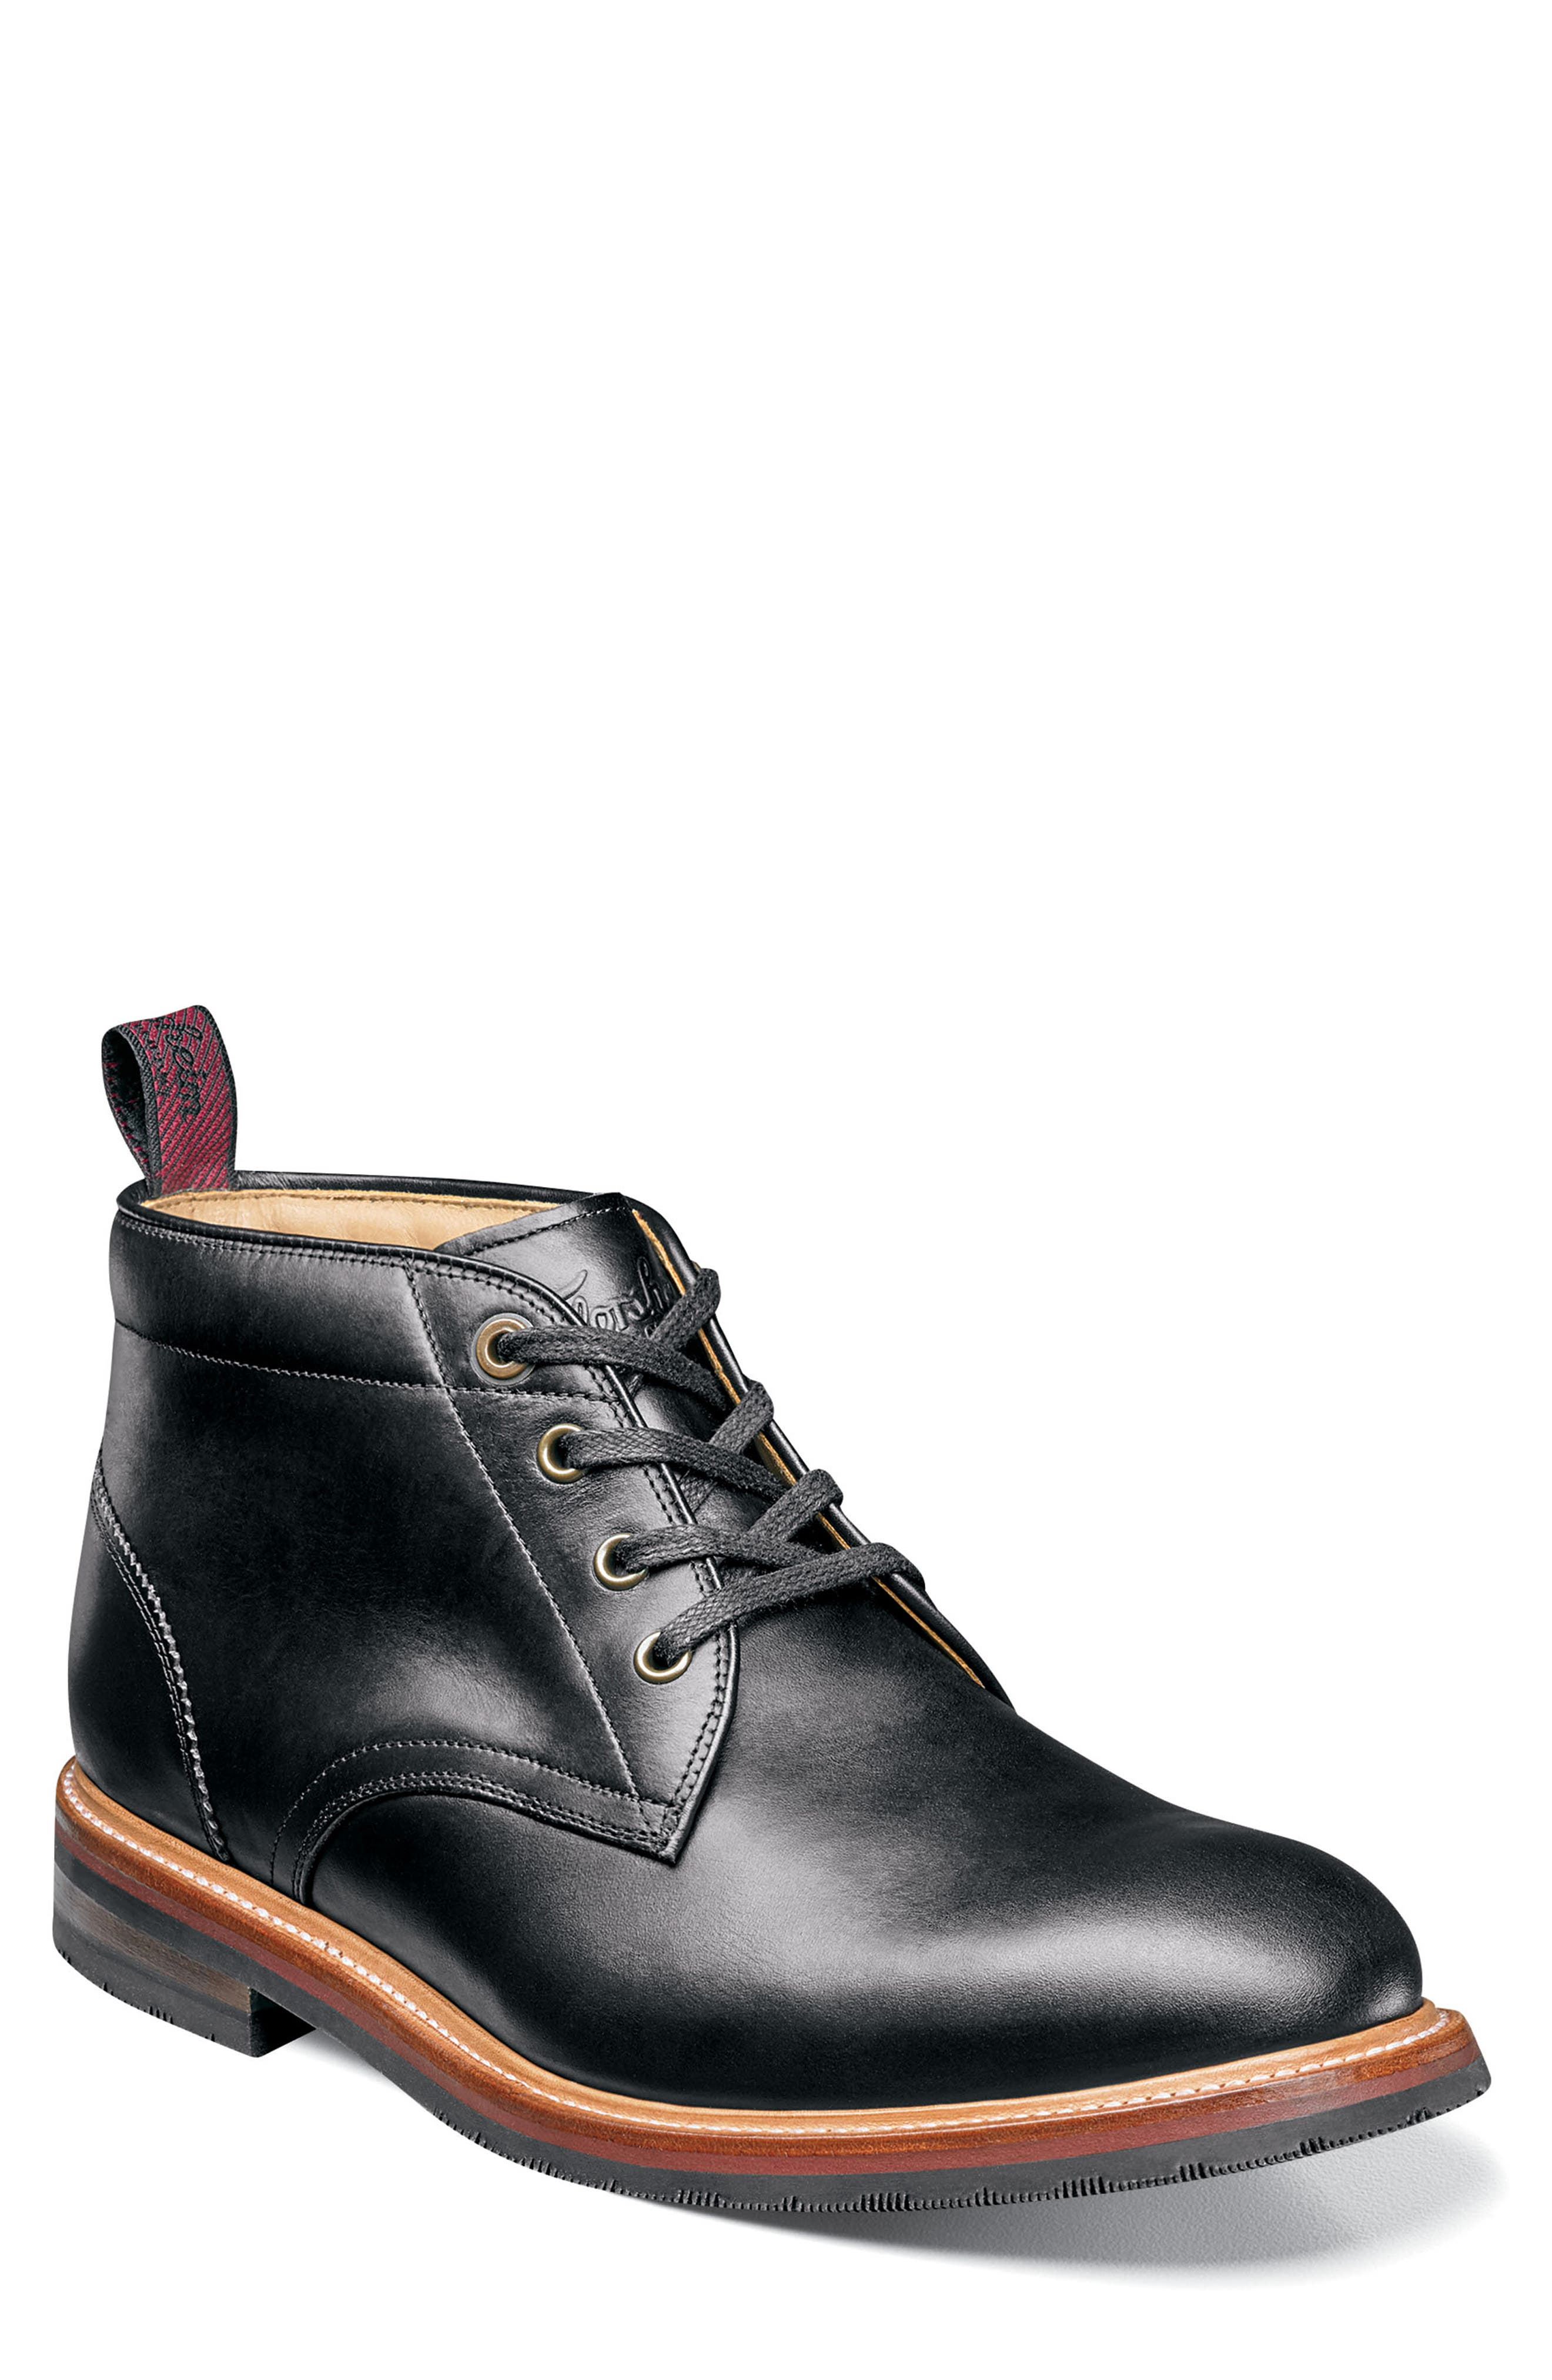 FLORSHEIM, Foundry Leather Boot, Main thumbnail 1, color, BLACK LEATHER